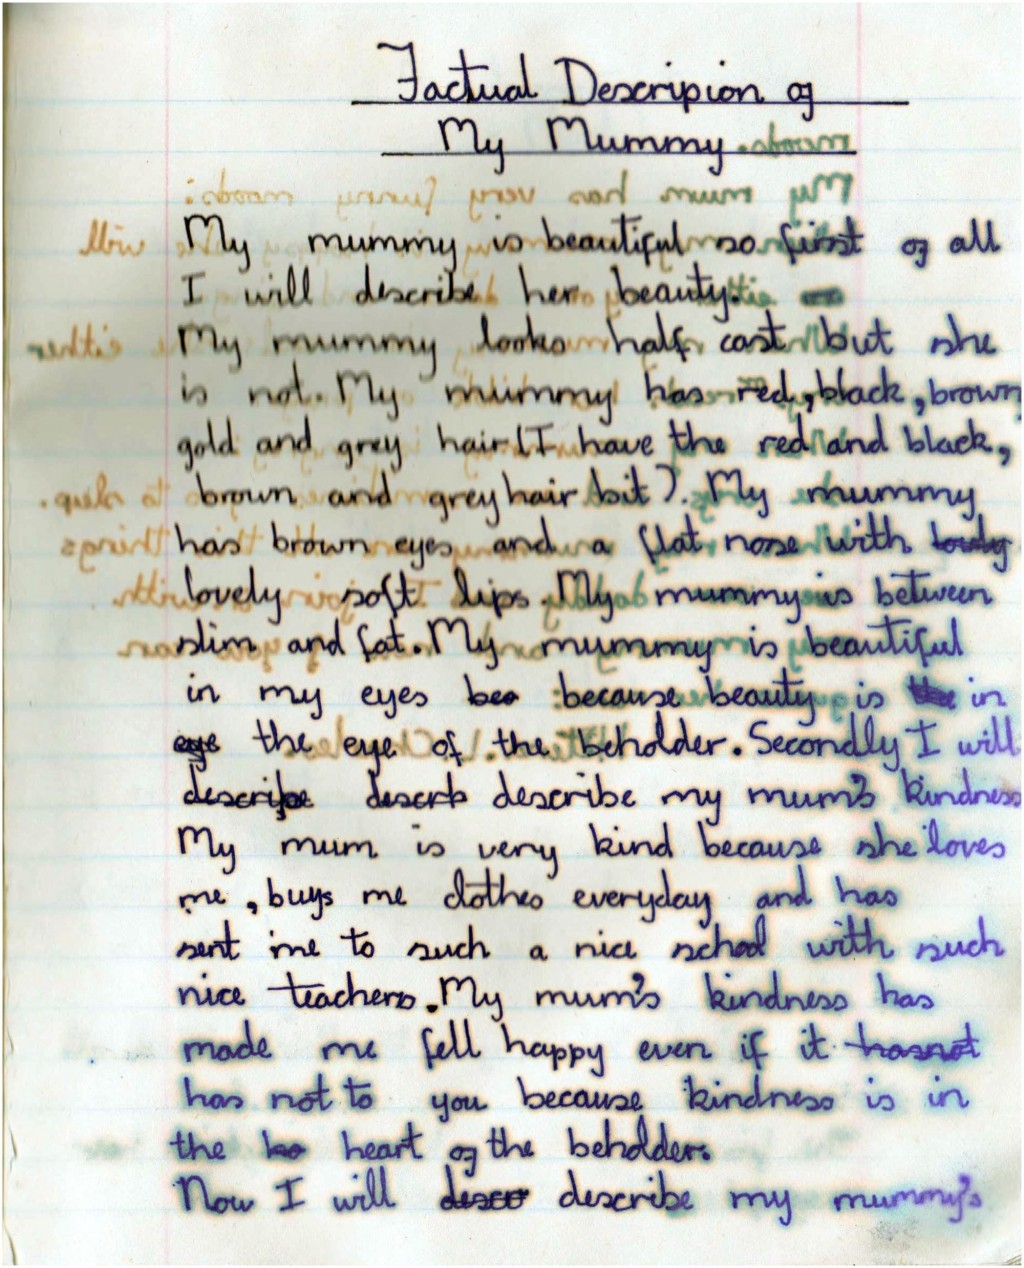 020 Letter To My Mother Love Mom Essay How Write Papers About Example Phenomenal Mothers Wikipedia In Tamil On Gujarati Large